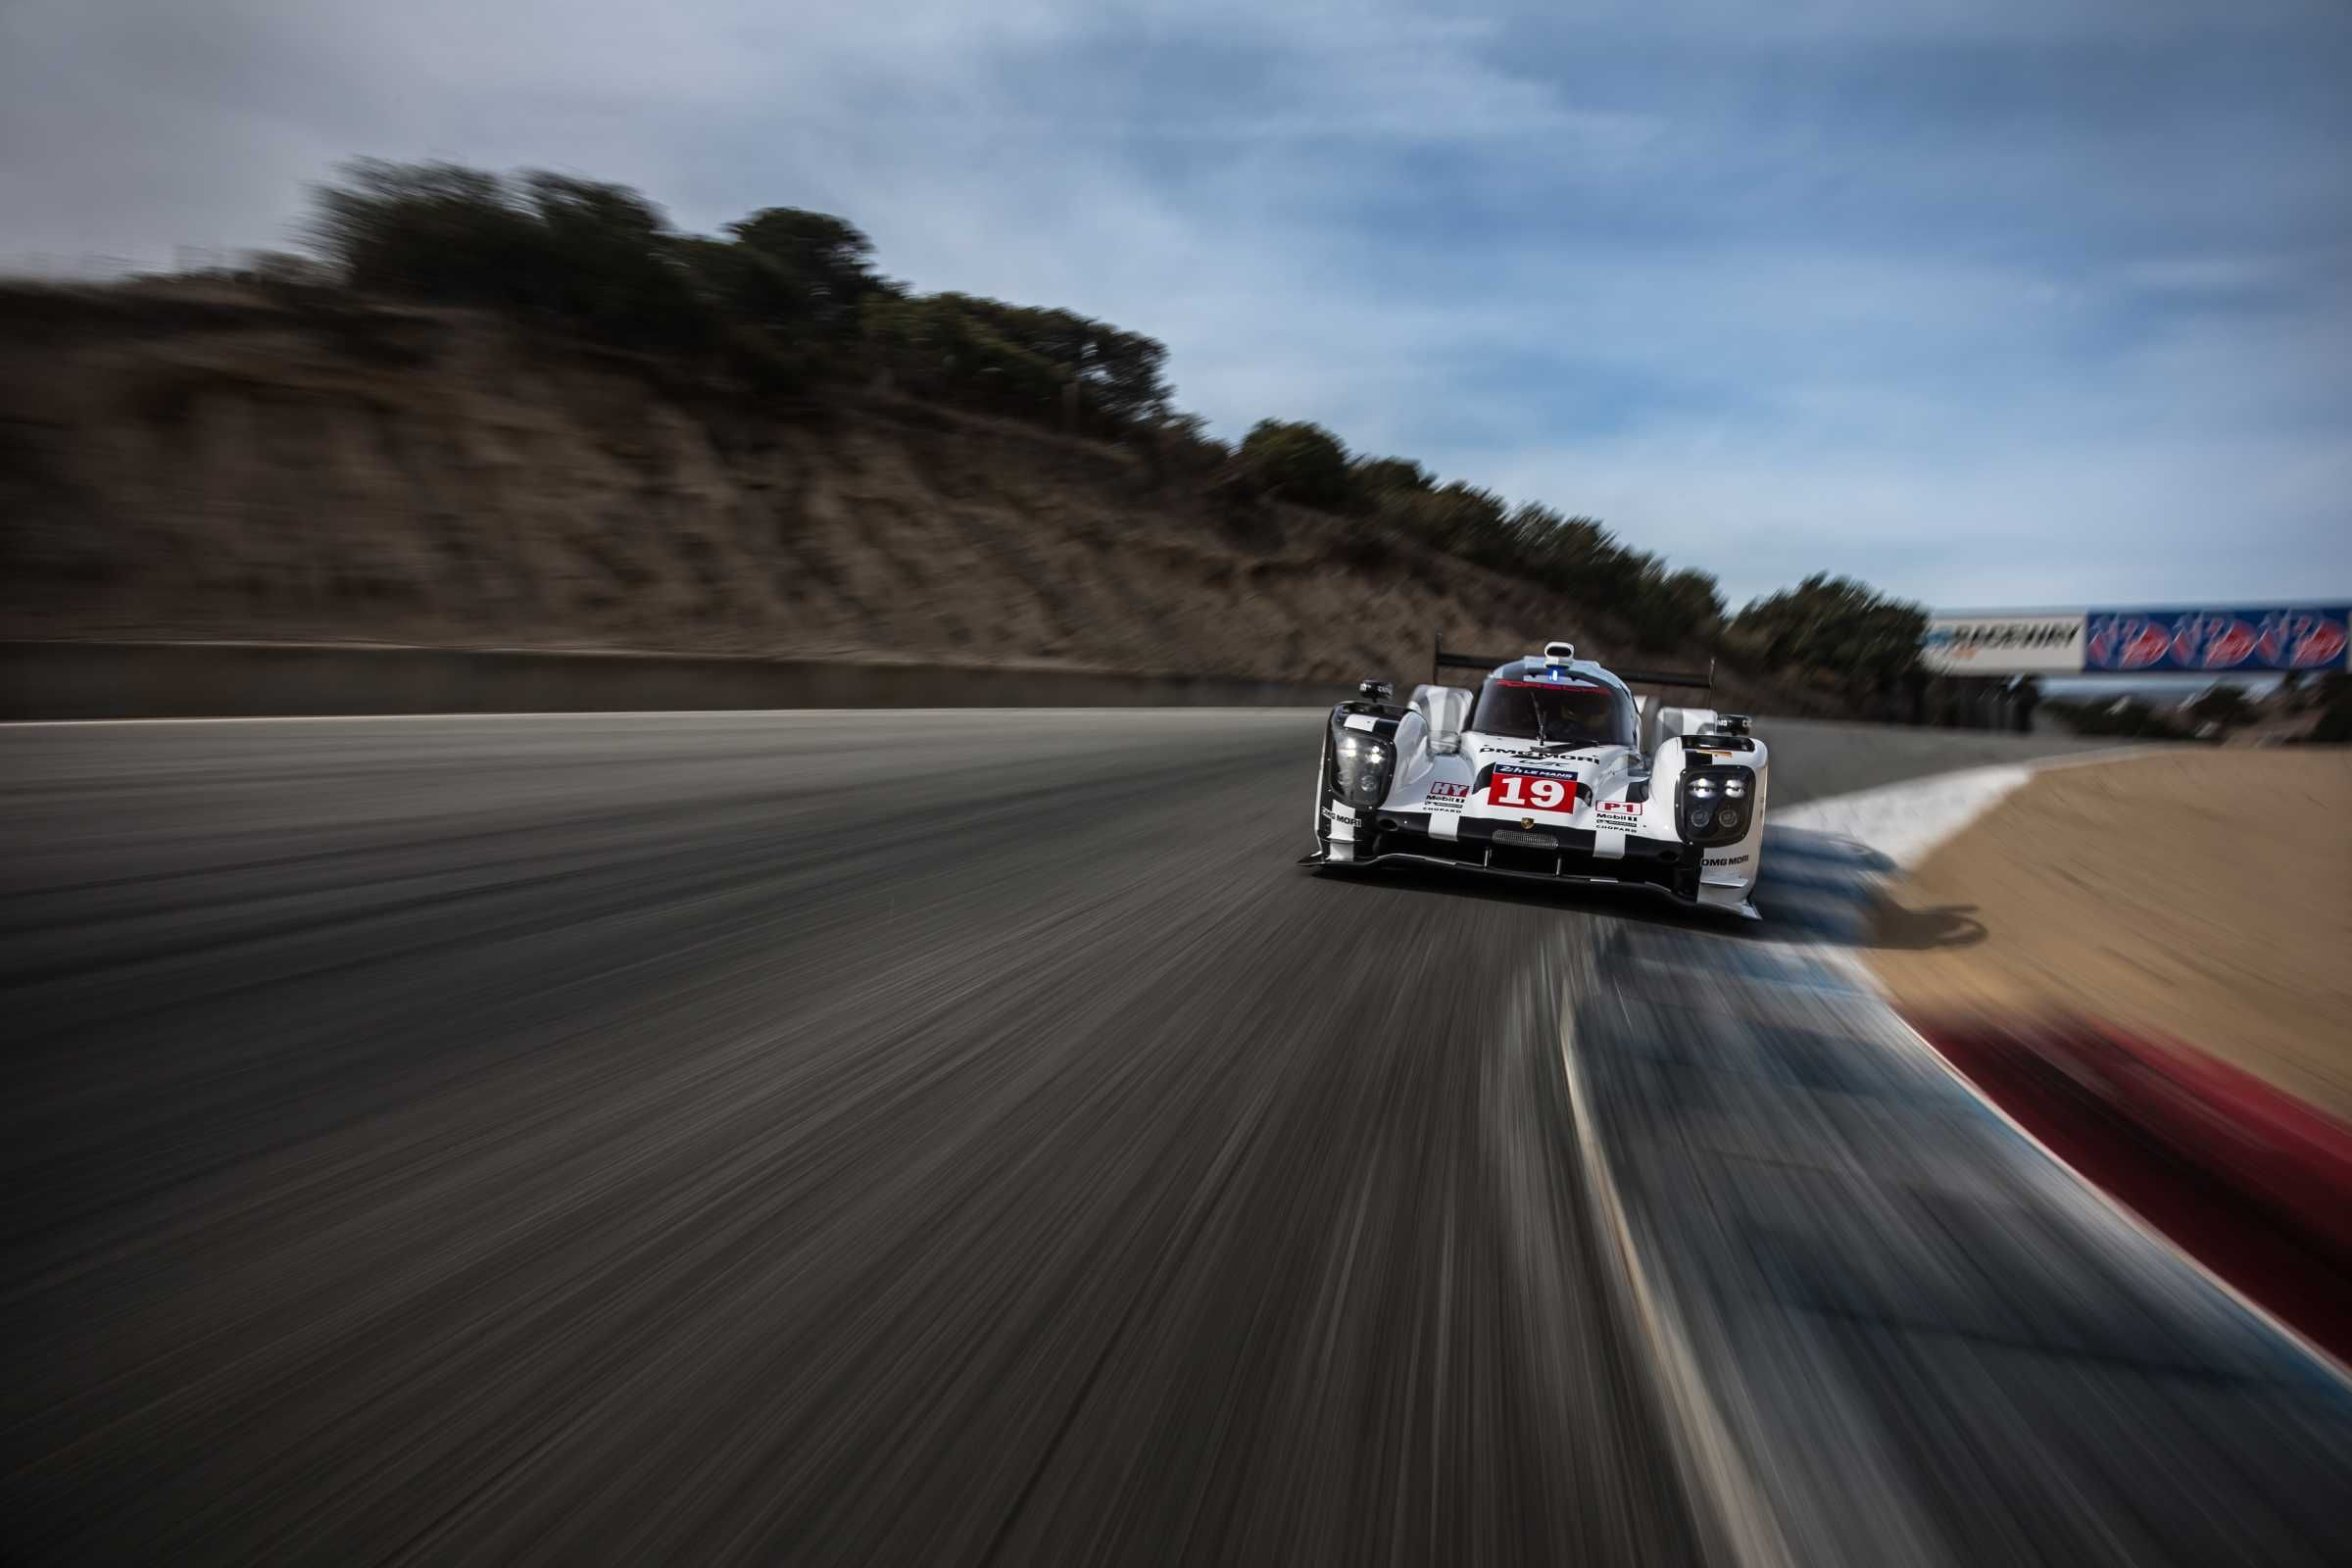 POV Video Of Iconic Porsche Race Cars Doing A Lap At Laguna-Seca | Cars